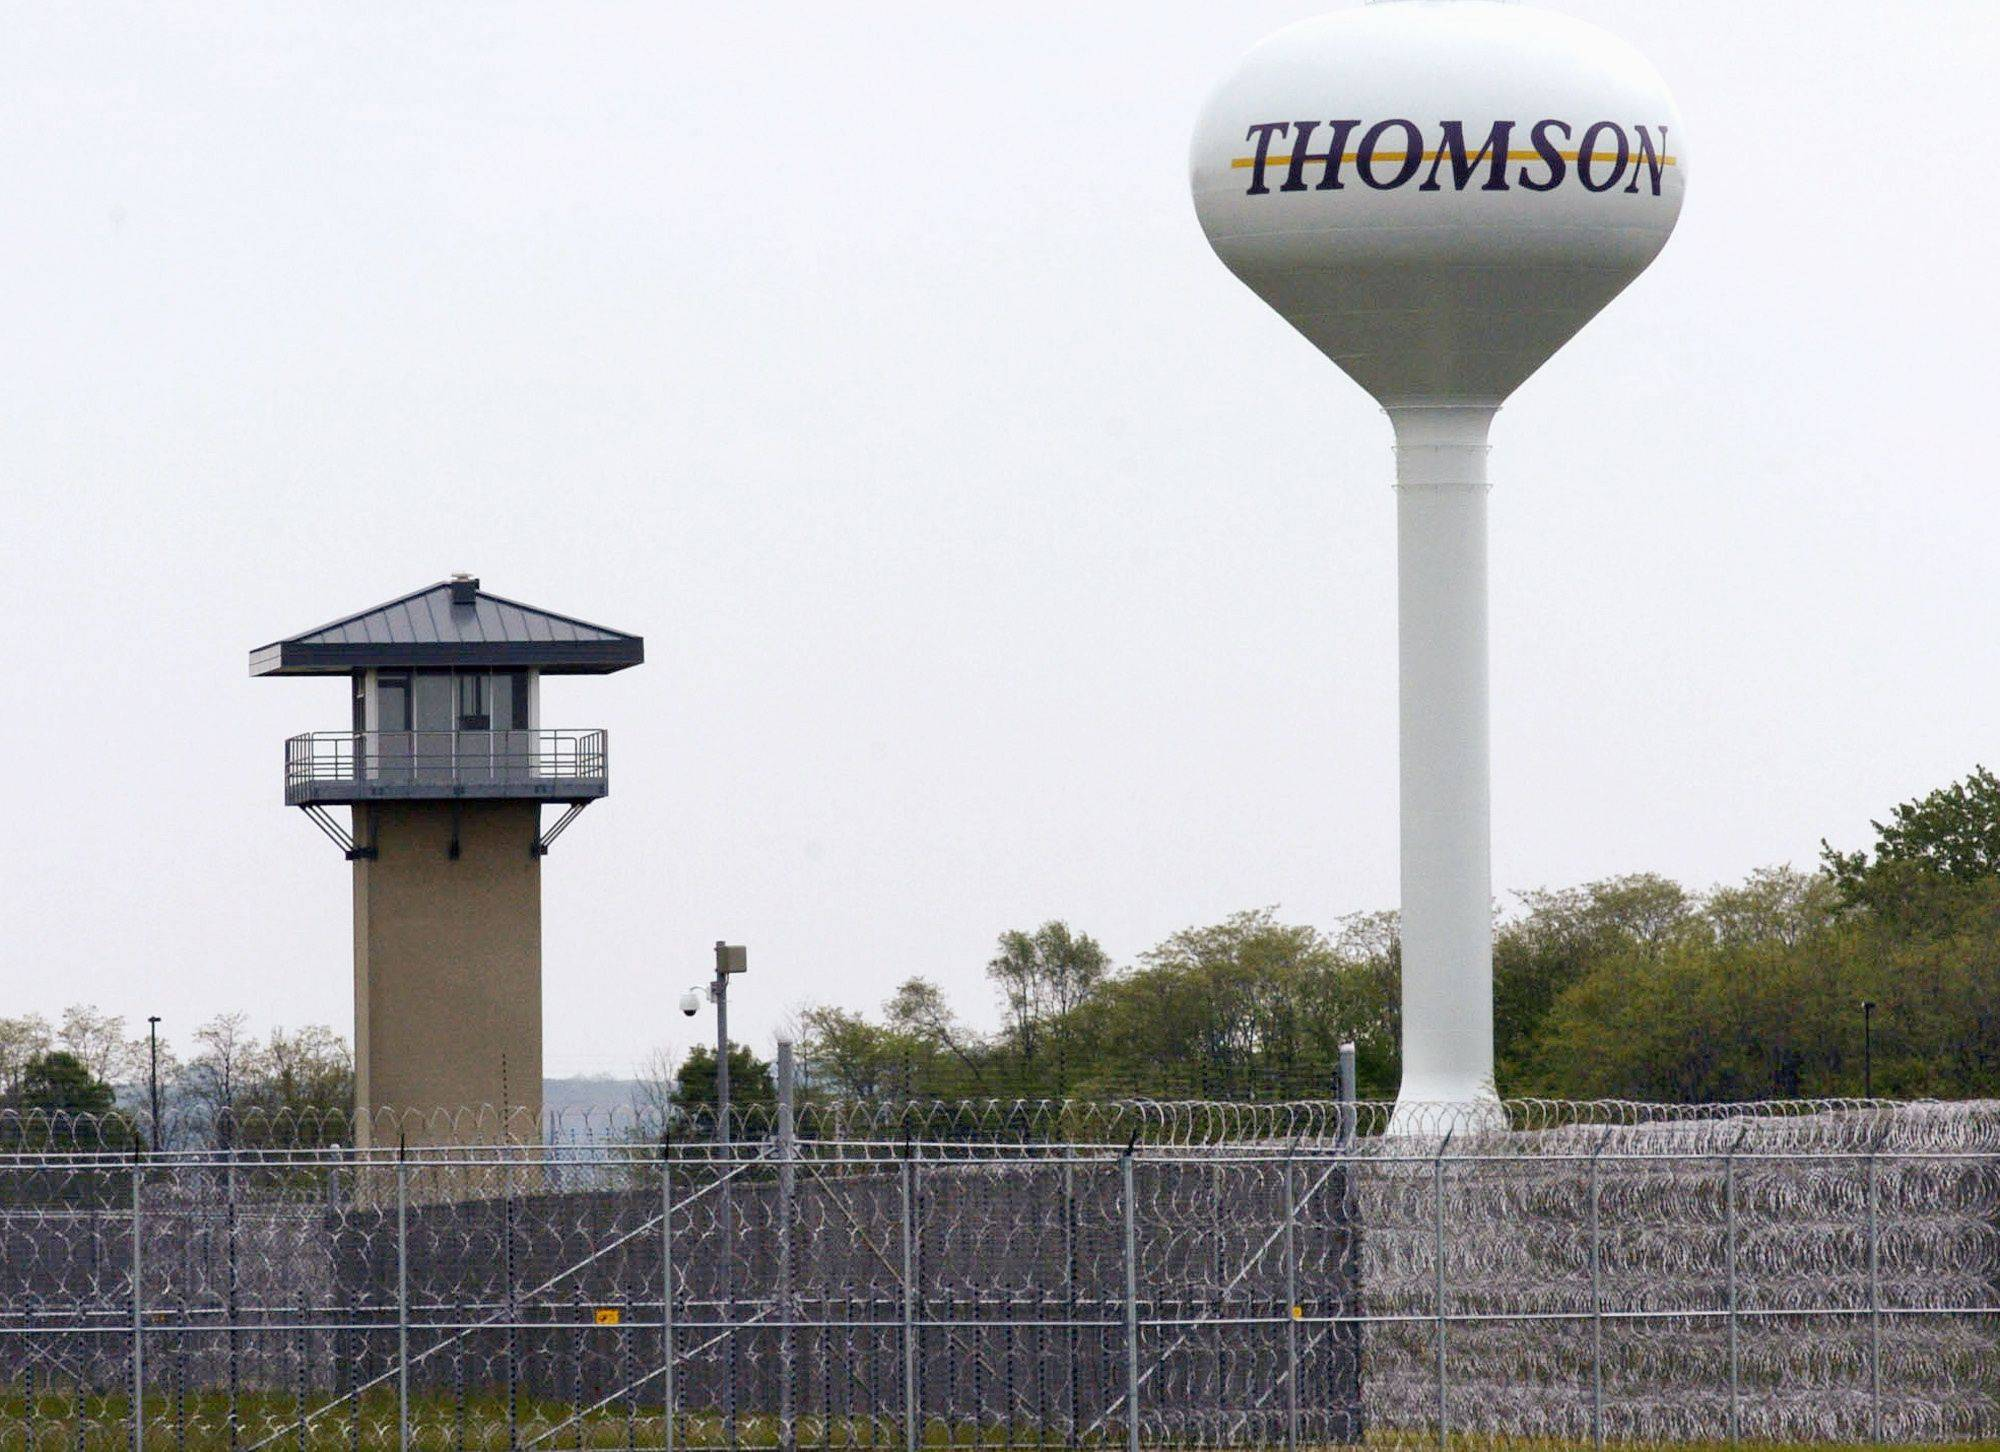 Suburban Republican lawmakers are urging President Barack Obama top keep Gitmo detainees from ever benign housed at the Thomson prison, which is about 150 miles west of Chicago.